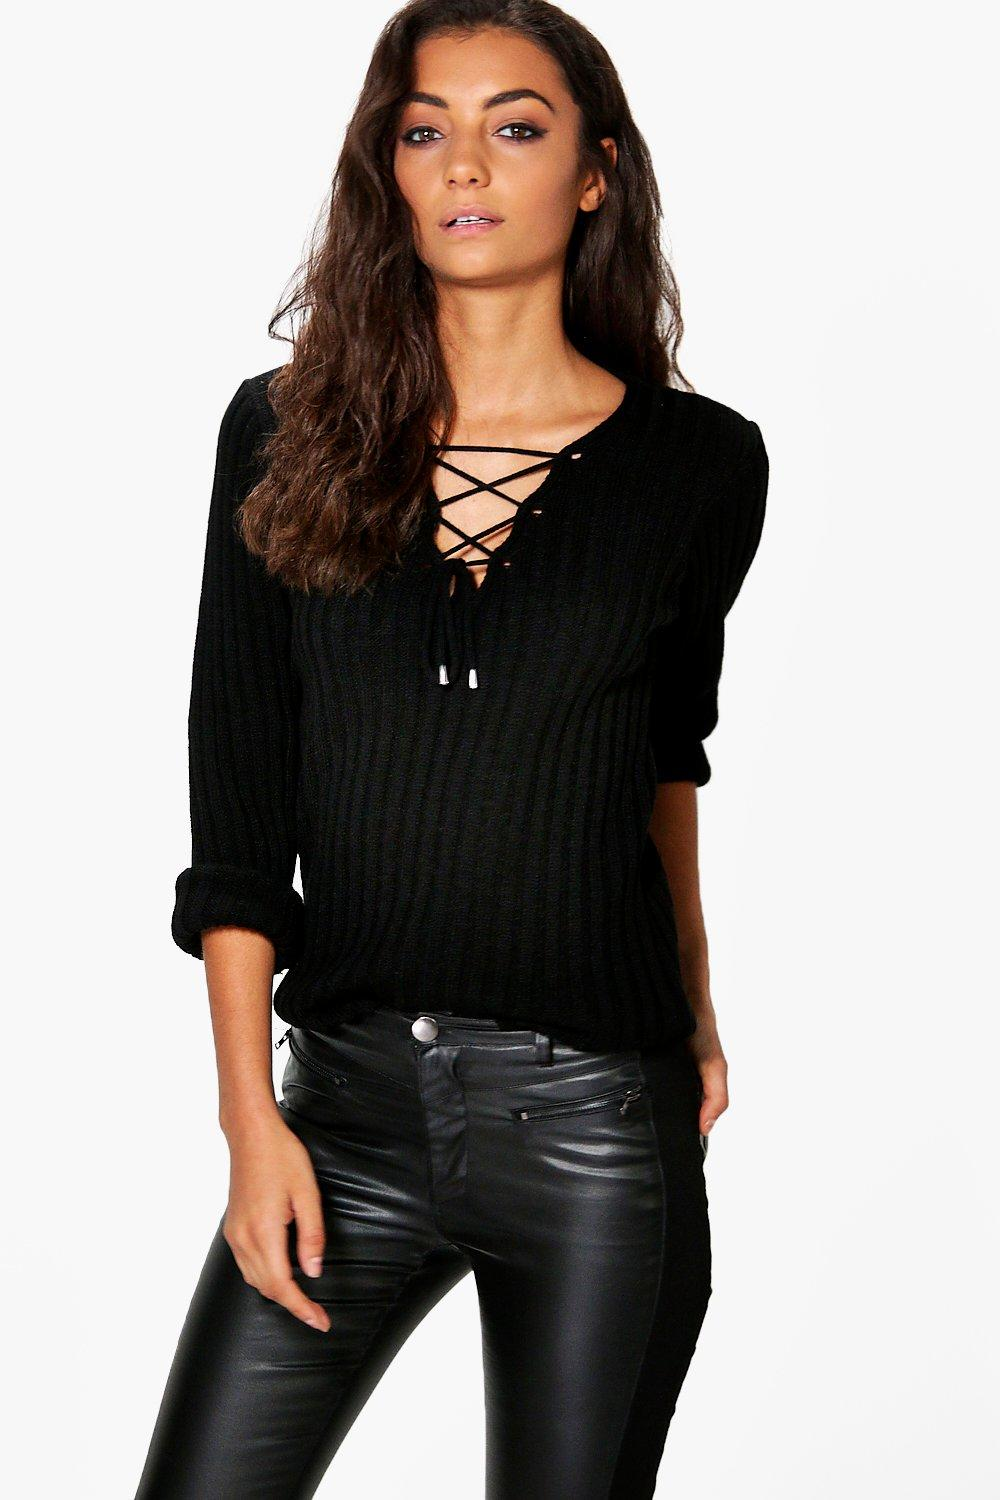 JUMPERS & SWEATERS. This season's sweater line up promises serious style miles. Think chic crew necks, slouchy cardis, statement stripes and high voltage brights, all exclusively designed for women .